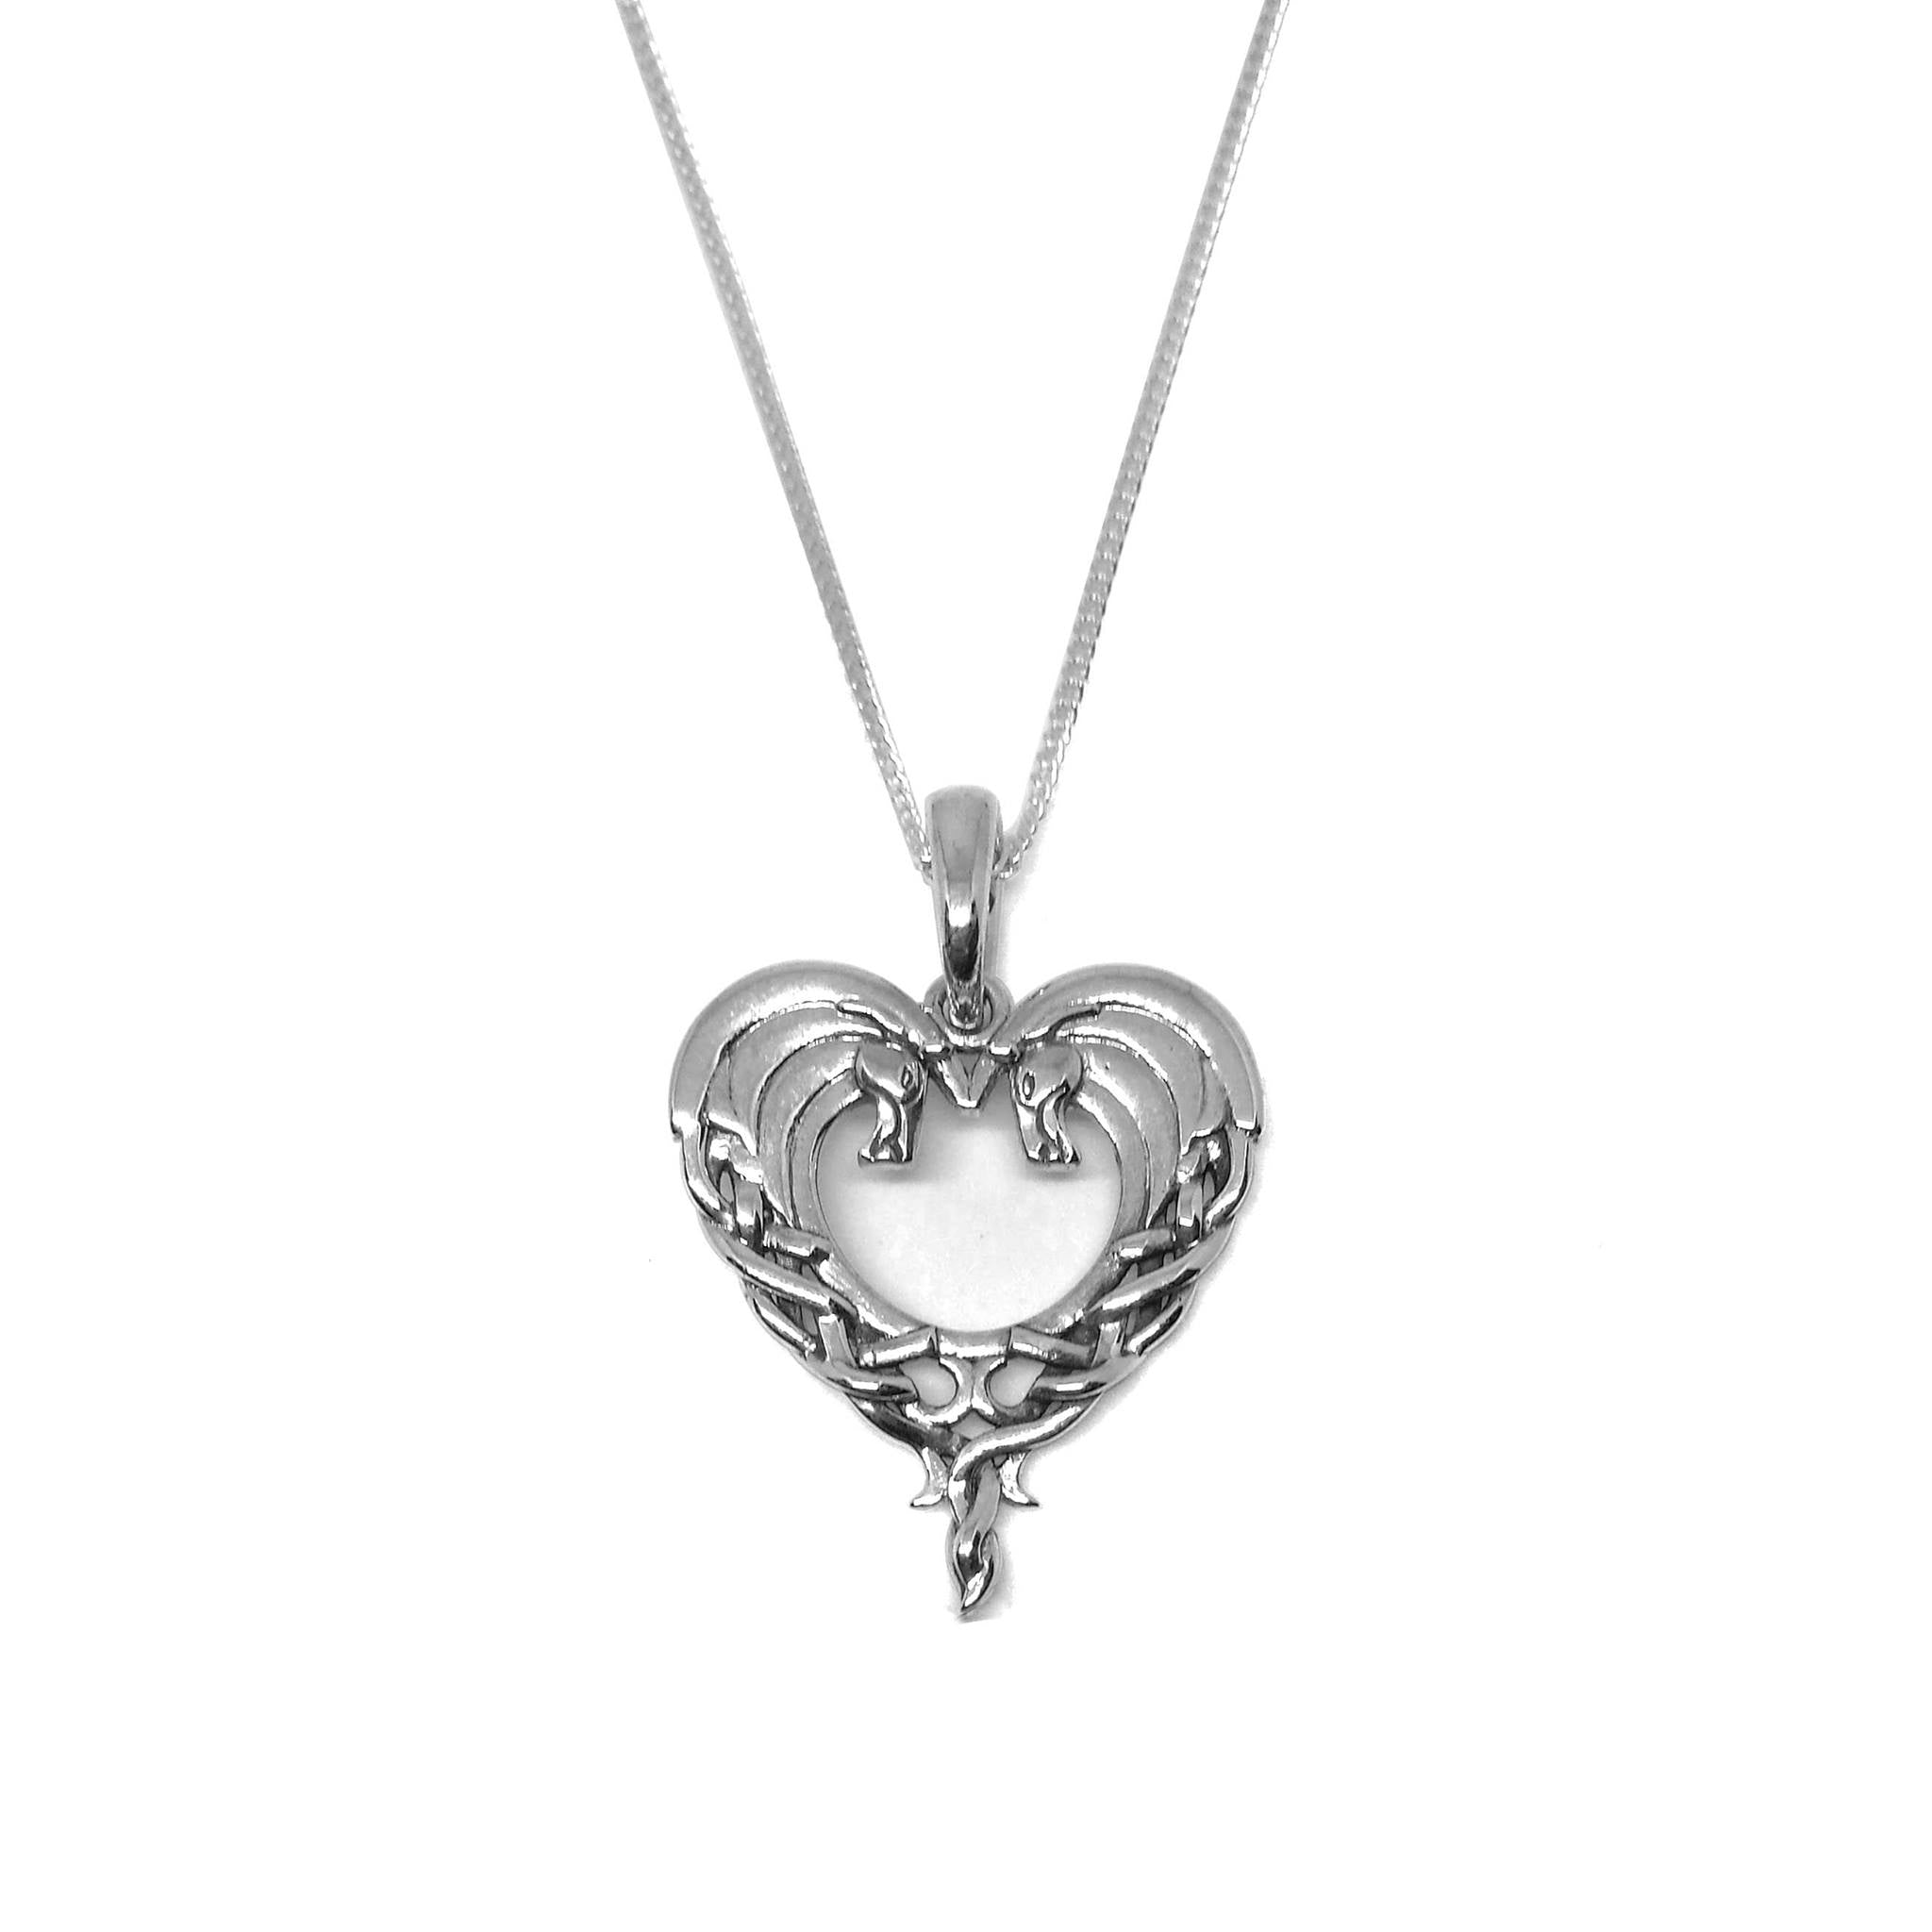 heart necklace silver pendant celtic ms love knot triangle gift category sku bag sterling tags